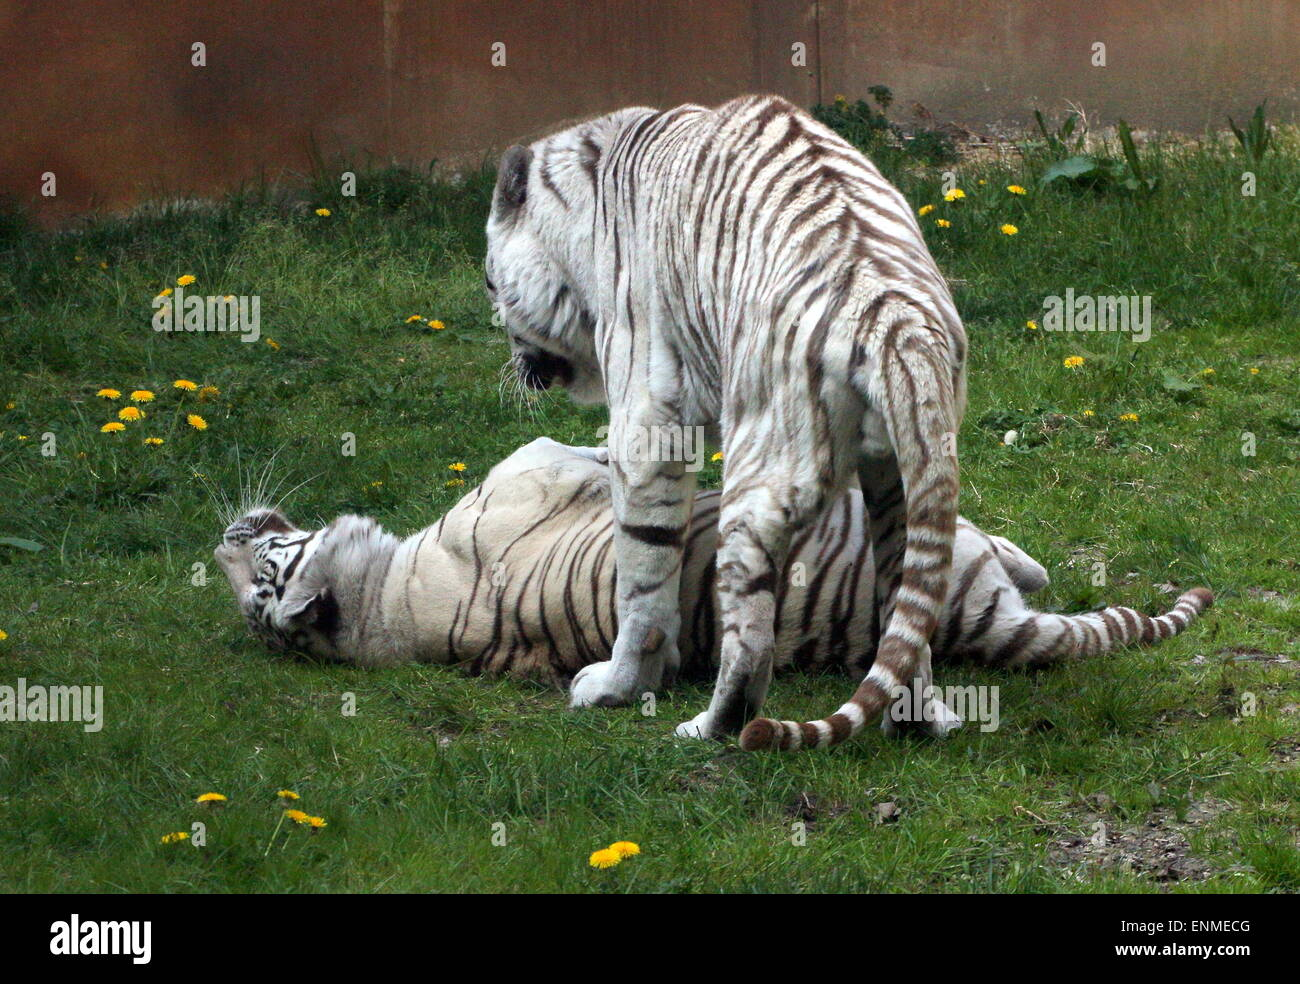 Frisky male and female White Bengal tiger (Panthera tigris tigris) at Ouwehand Zoo, Rhenen, The Netherlands - Stock Image